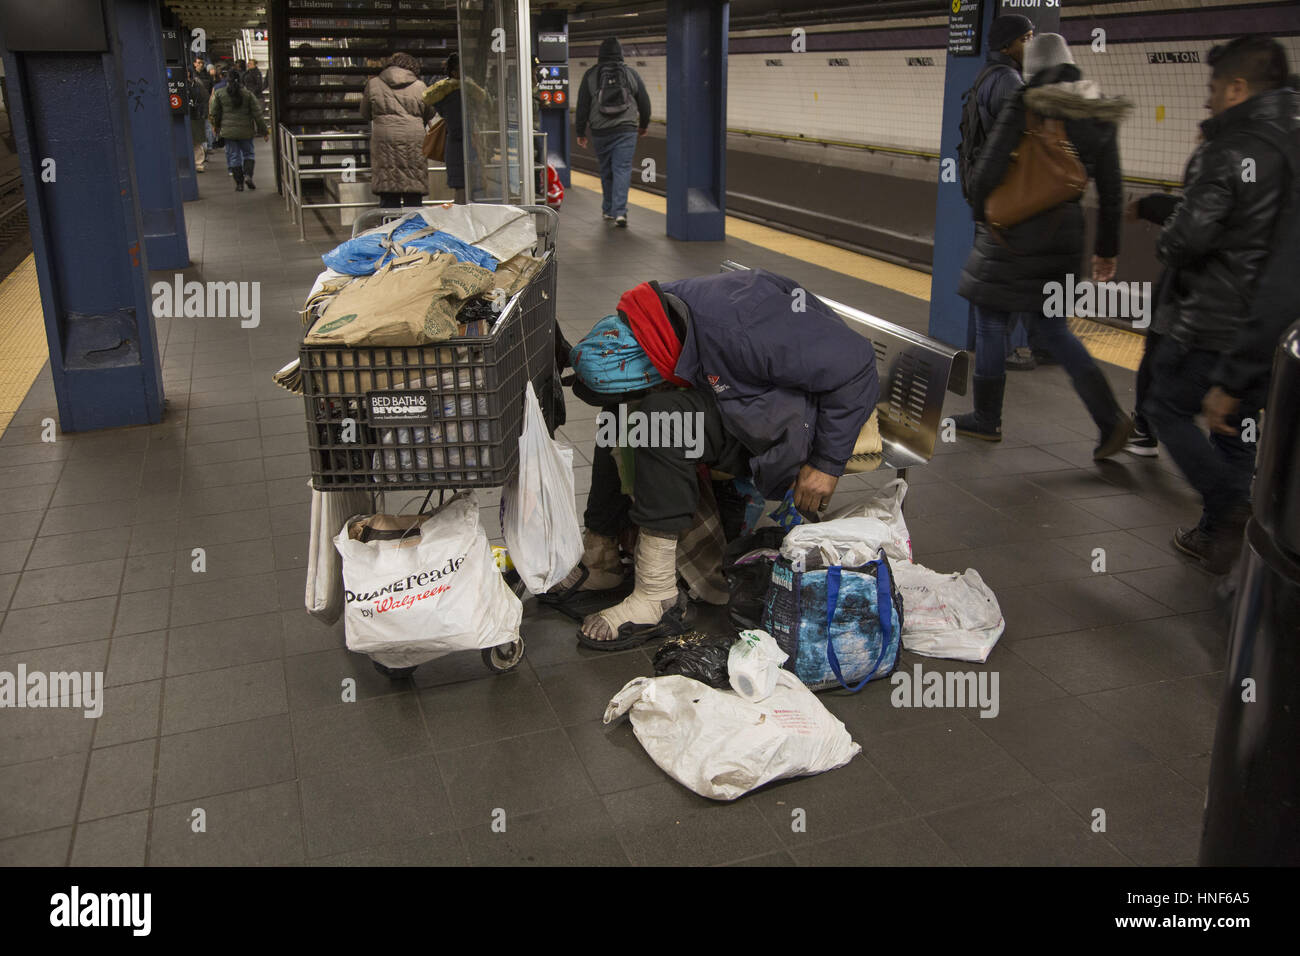 Mentally ill, homeless person sleeps on the train platform with his worldly possessions with him at Fulton Street - Stock Image